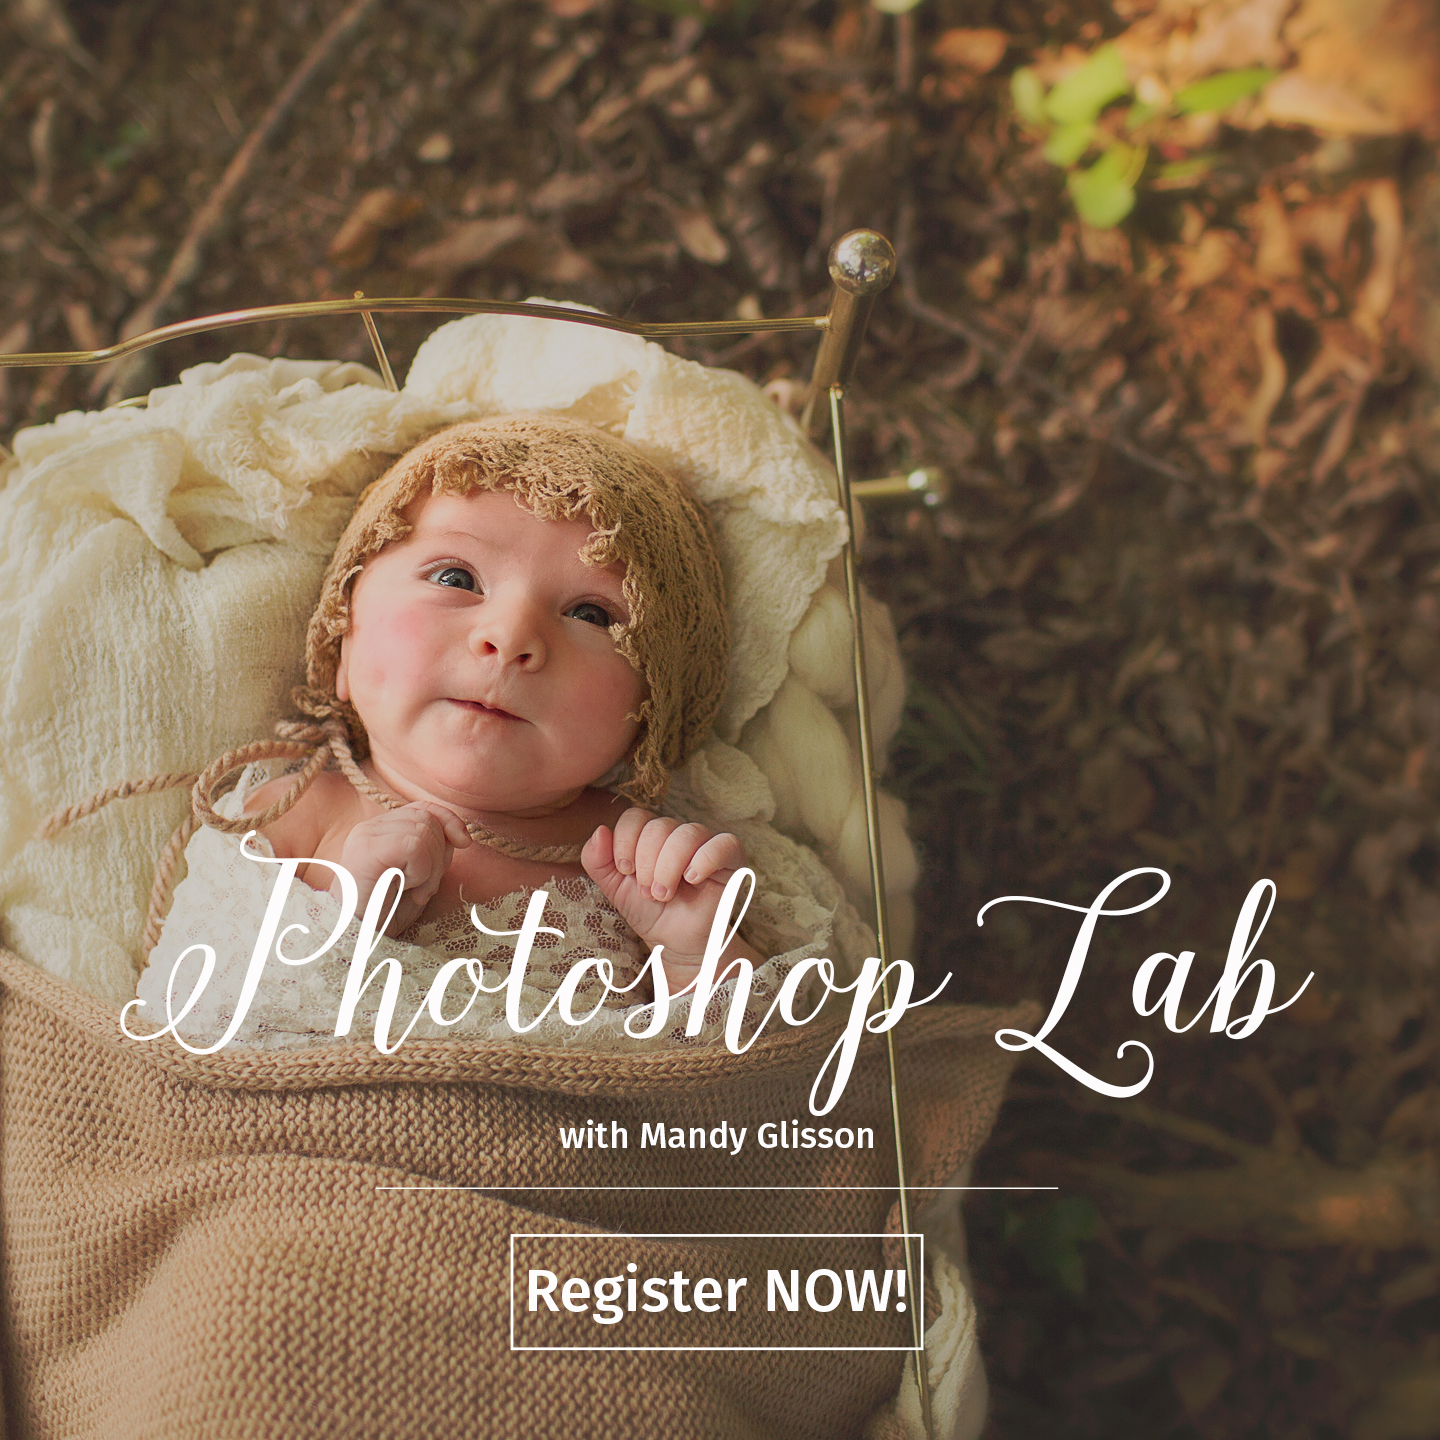 Photoshop Lab: An 8-Week Course to Mastering Photoshop